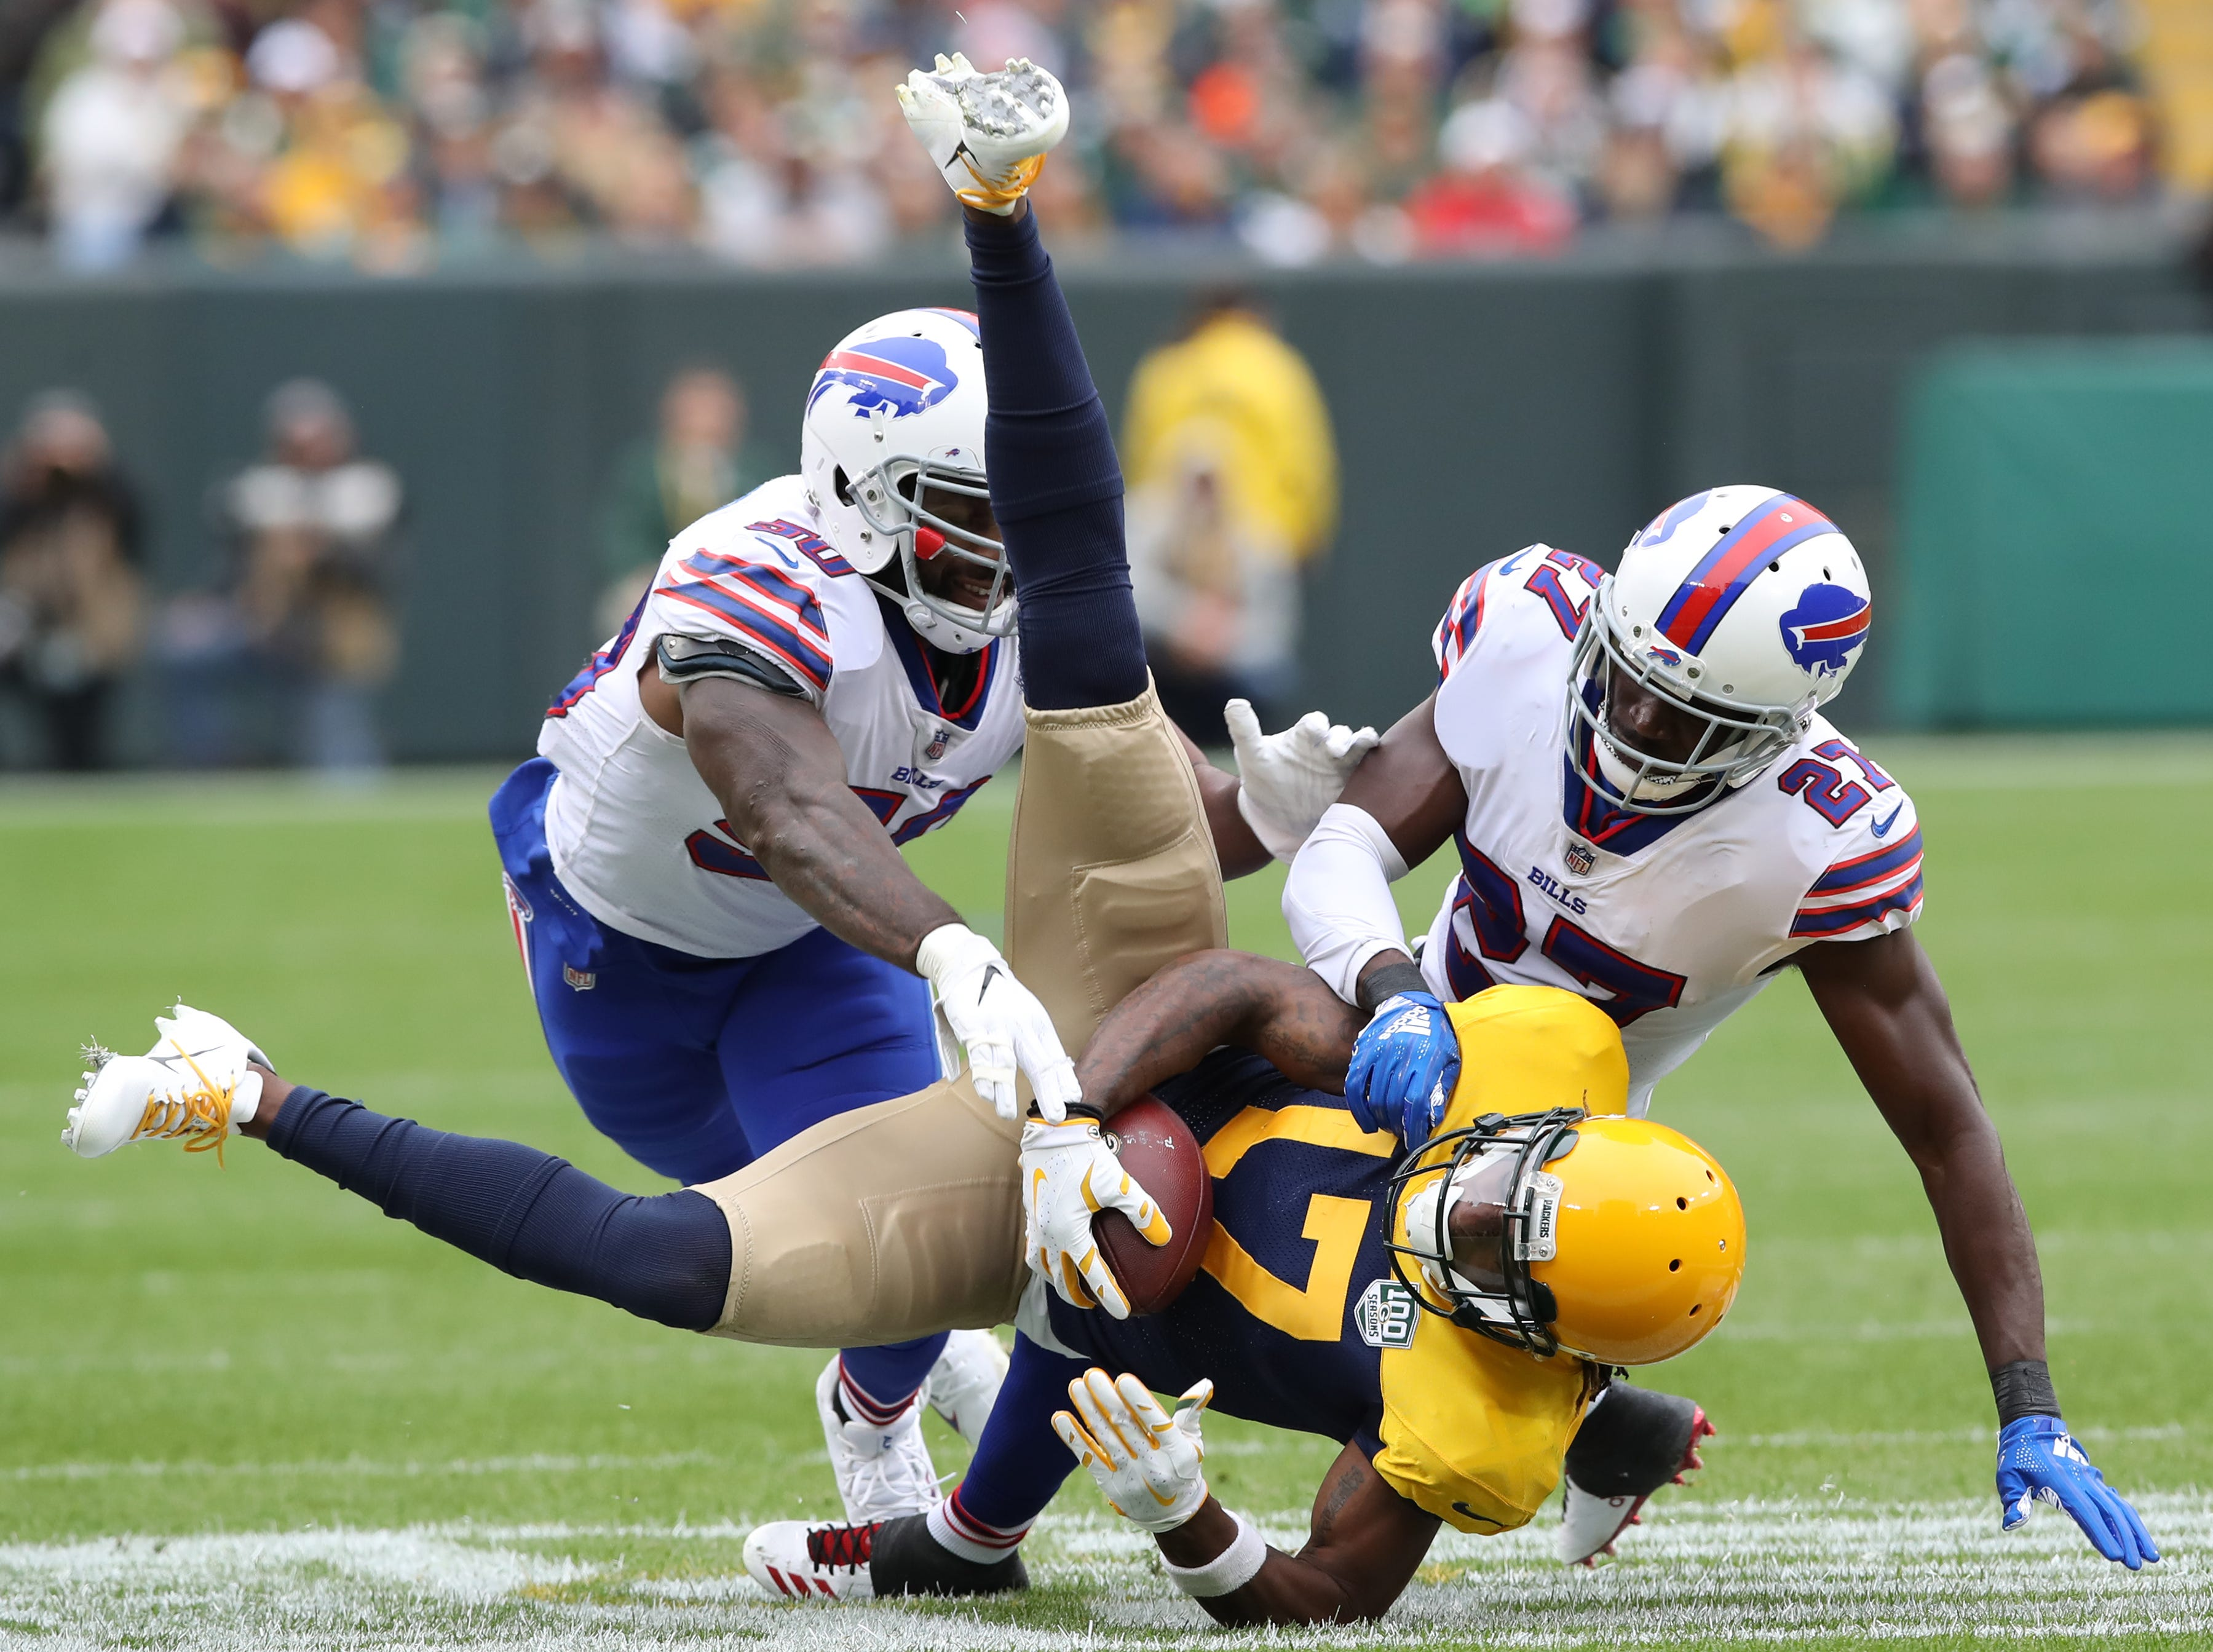 Green Bay Packers wide receiver Davante Adams (17) gets flipped while being tackled against the Buffalo Bills Sunday September 30, 2018 at Lambeau Field in Green Bay, Wis.